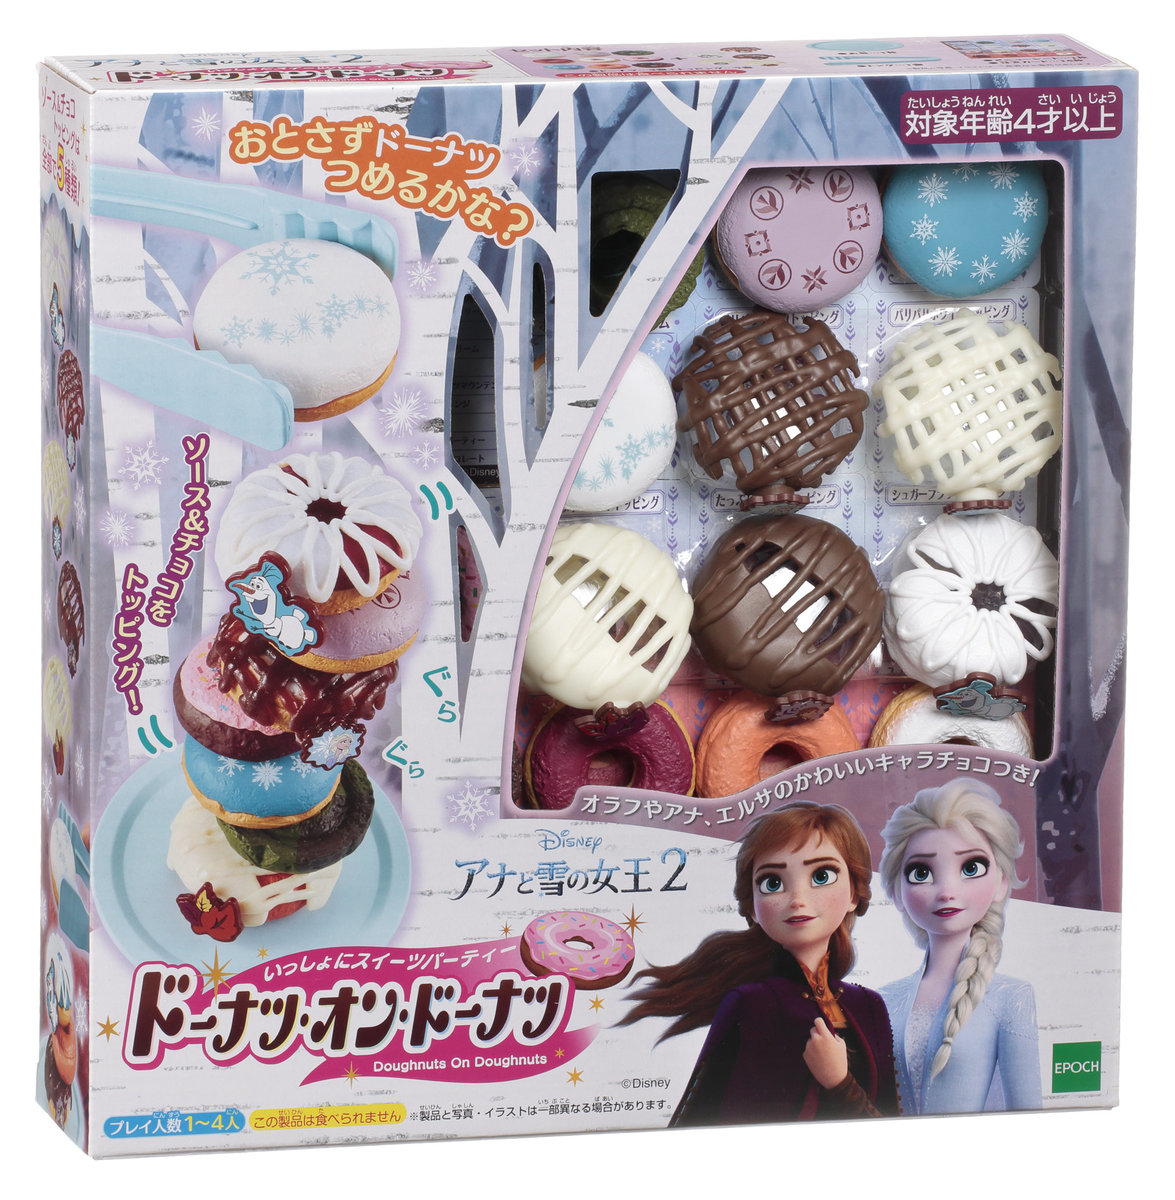 Frozen 2 Doughnuts on Doughnuts [Licensed by Disney]